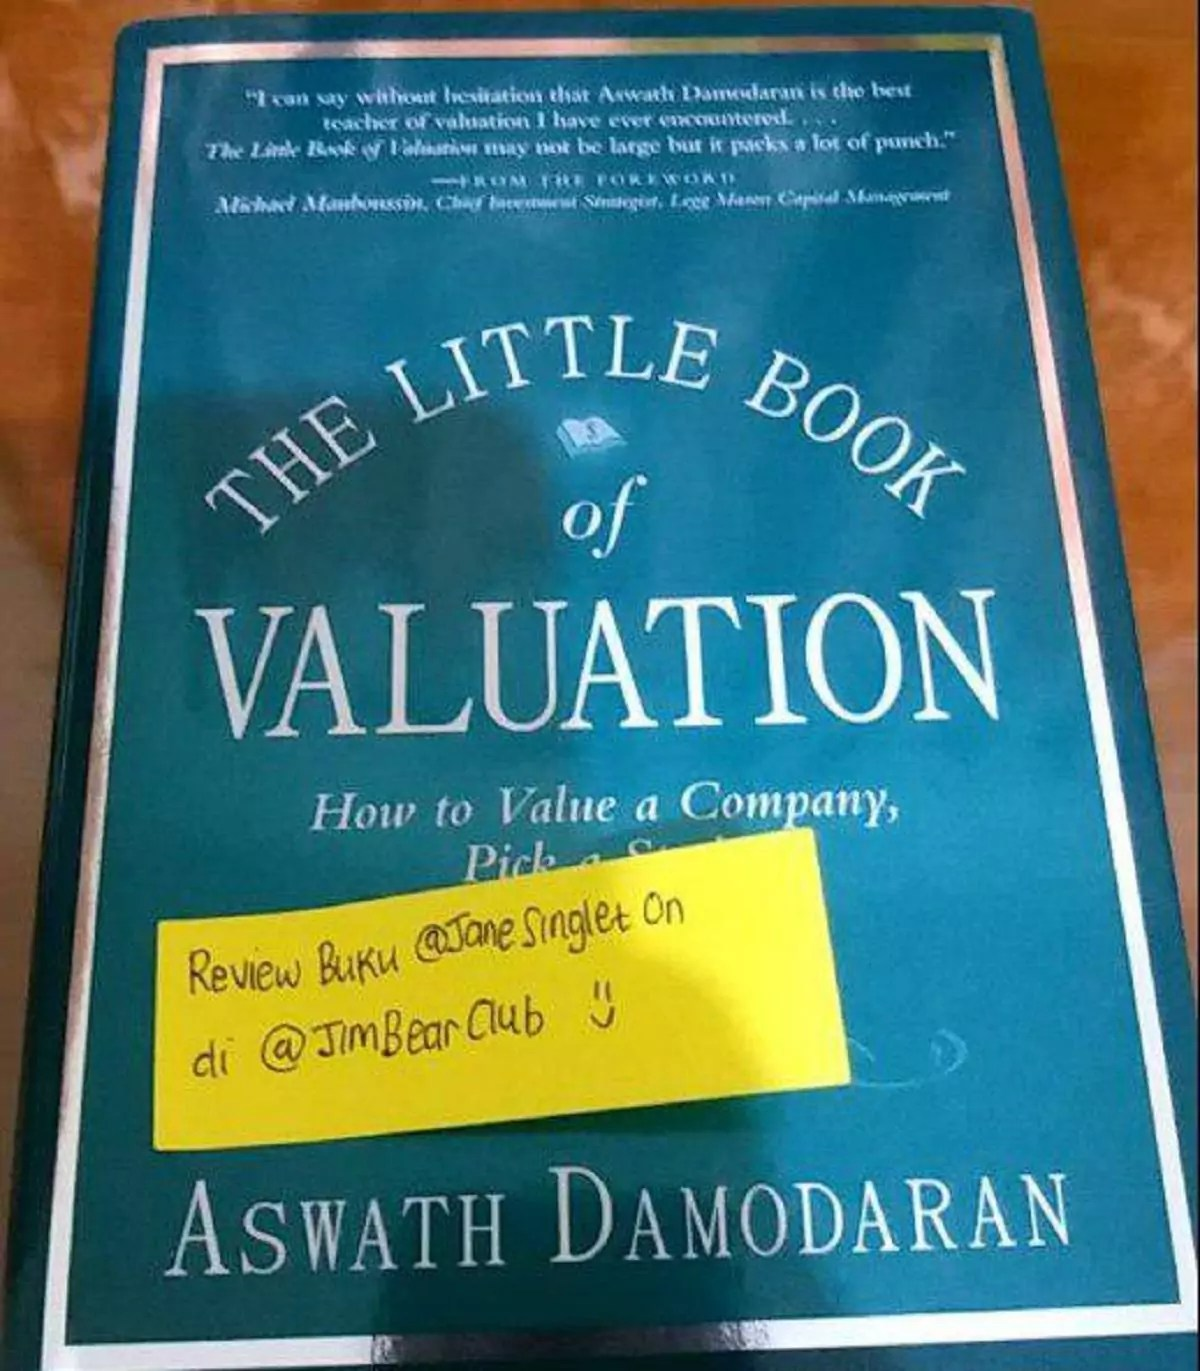 Bedah Buku : The Little Book of Valuation